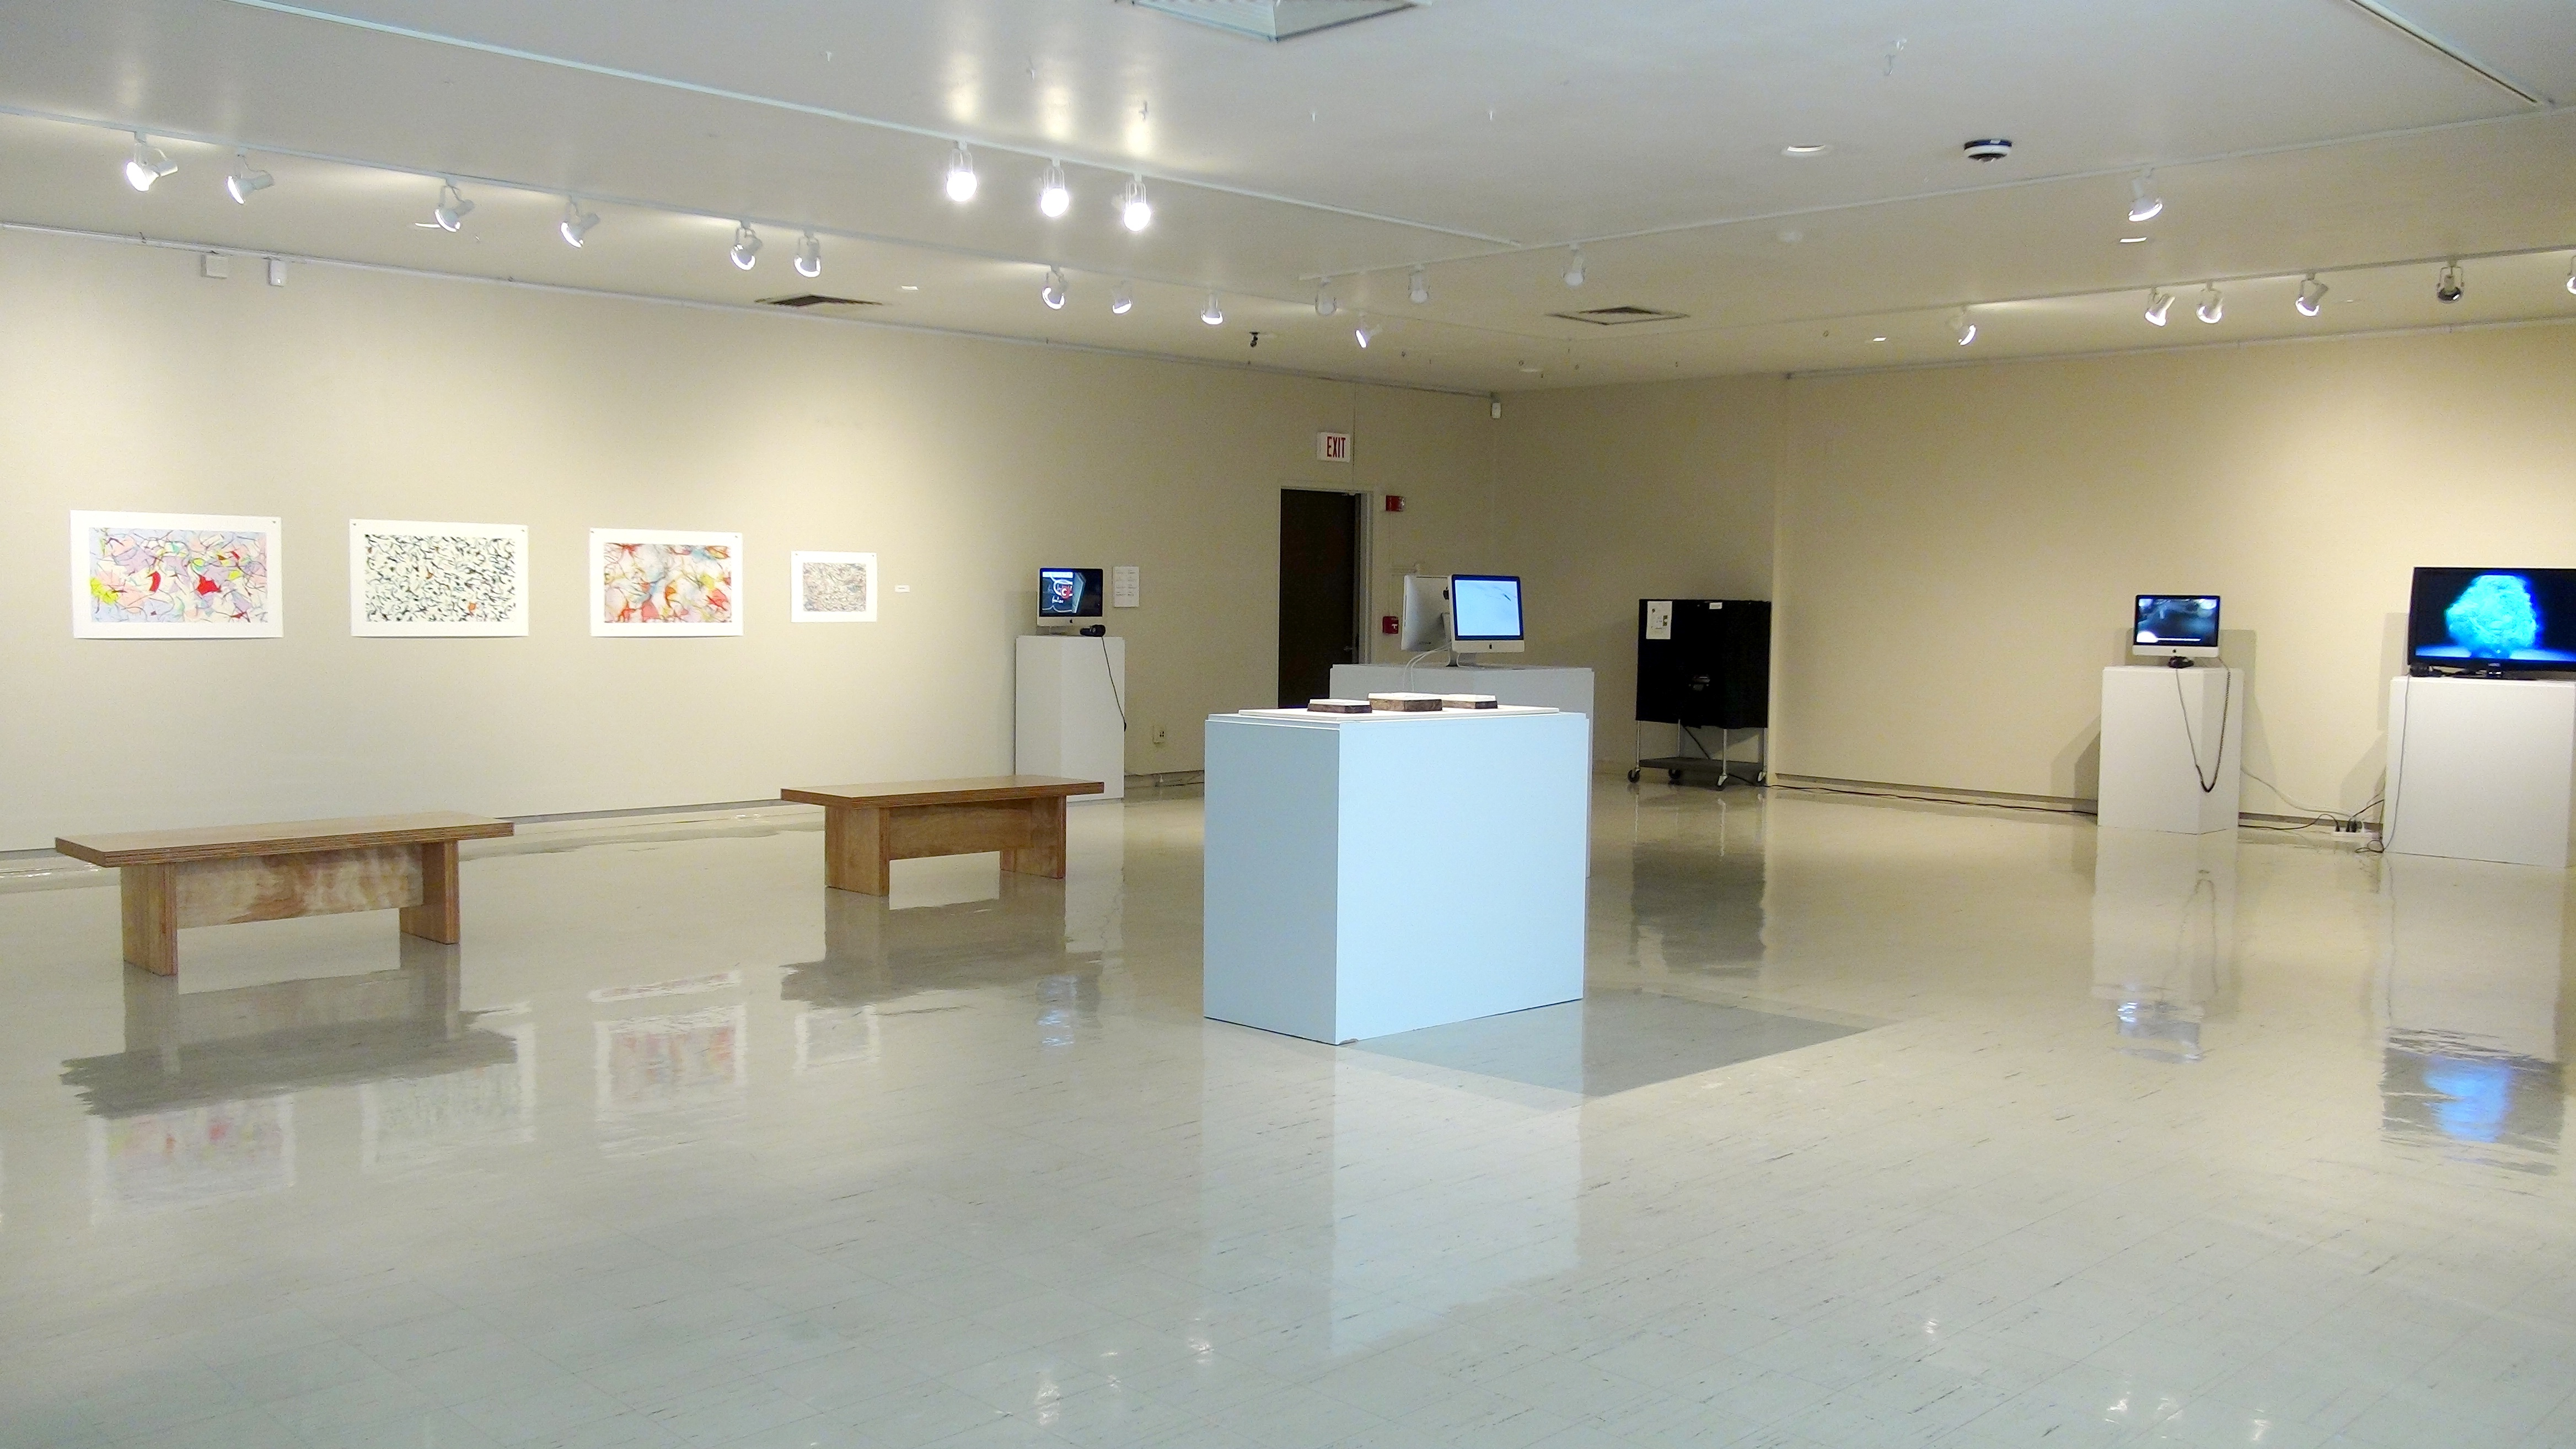 Installation View, The Body Electric